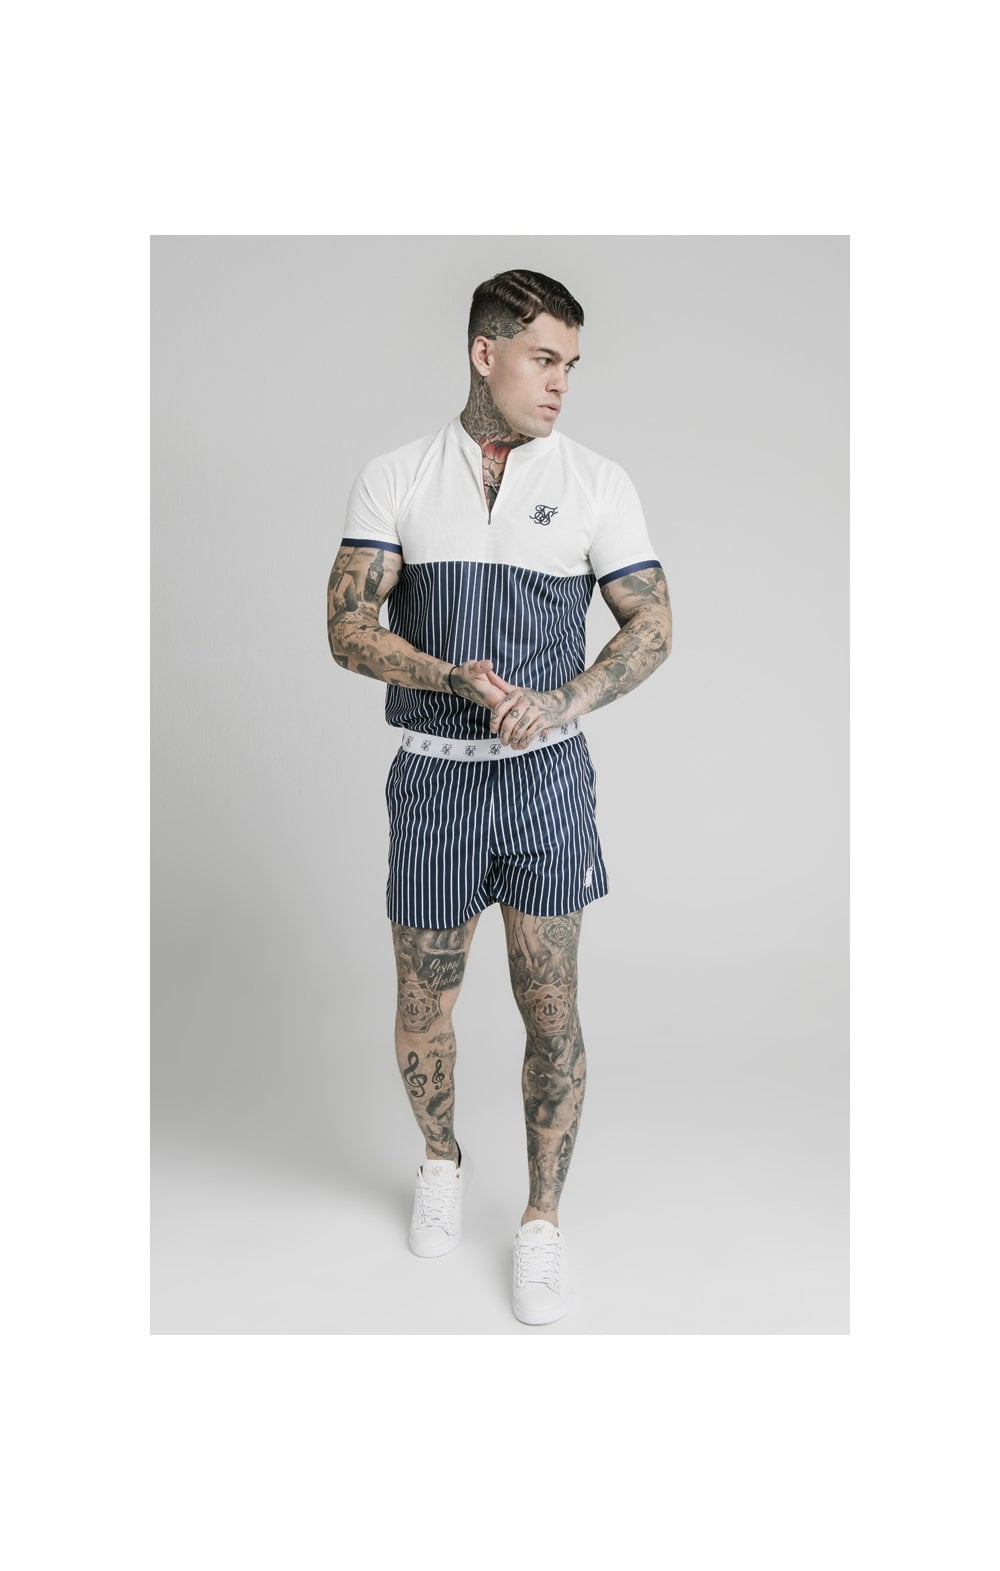 SikSilk Eyelet Elasticated Swim Shorts - Navy & White (2)